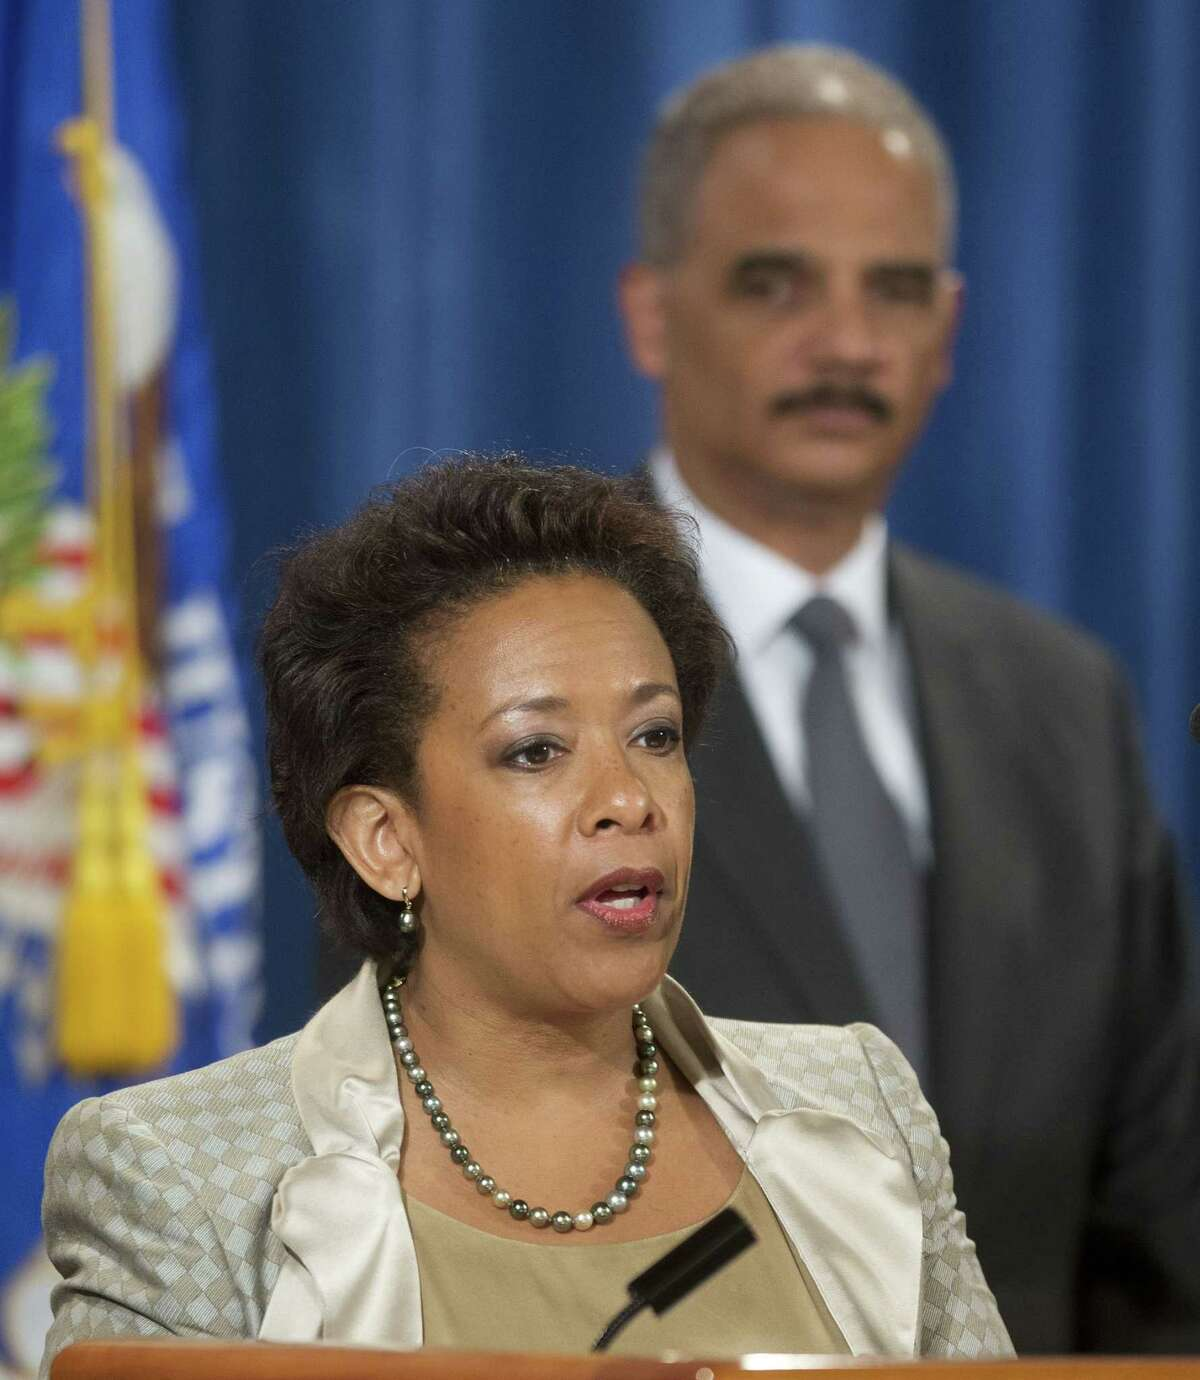 In this July 28, 2014 file photo, Attorney General Eric Holder, right, listens to, Loretta Lynch, left, U.S. Attorney for the Eastern District of New York speaks during a news conference at the Justice Department in Washington. President Obama chose Lynch as attorney general on Friday, Nov. 7, 2014, which would make her the first black woman in the position